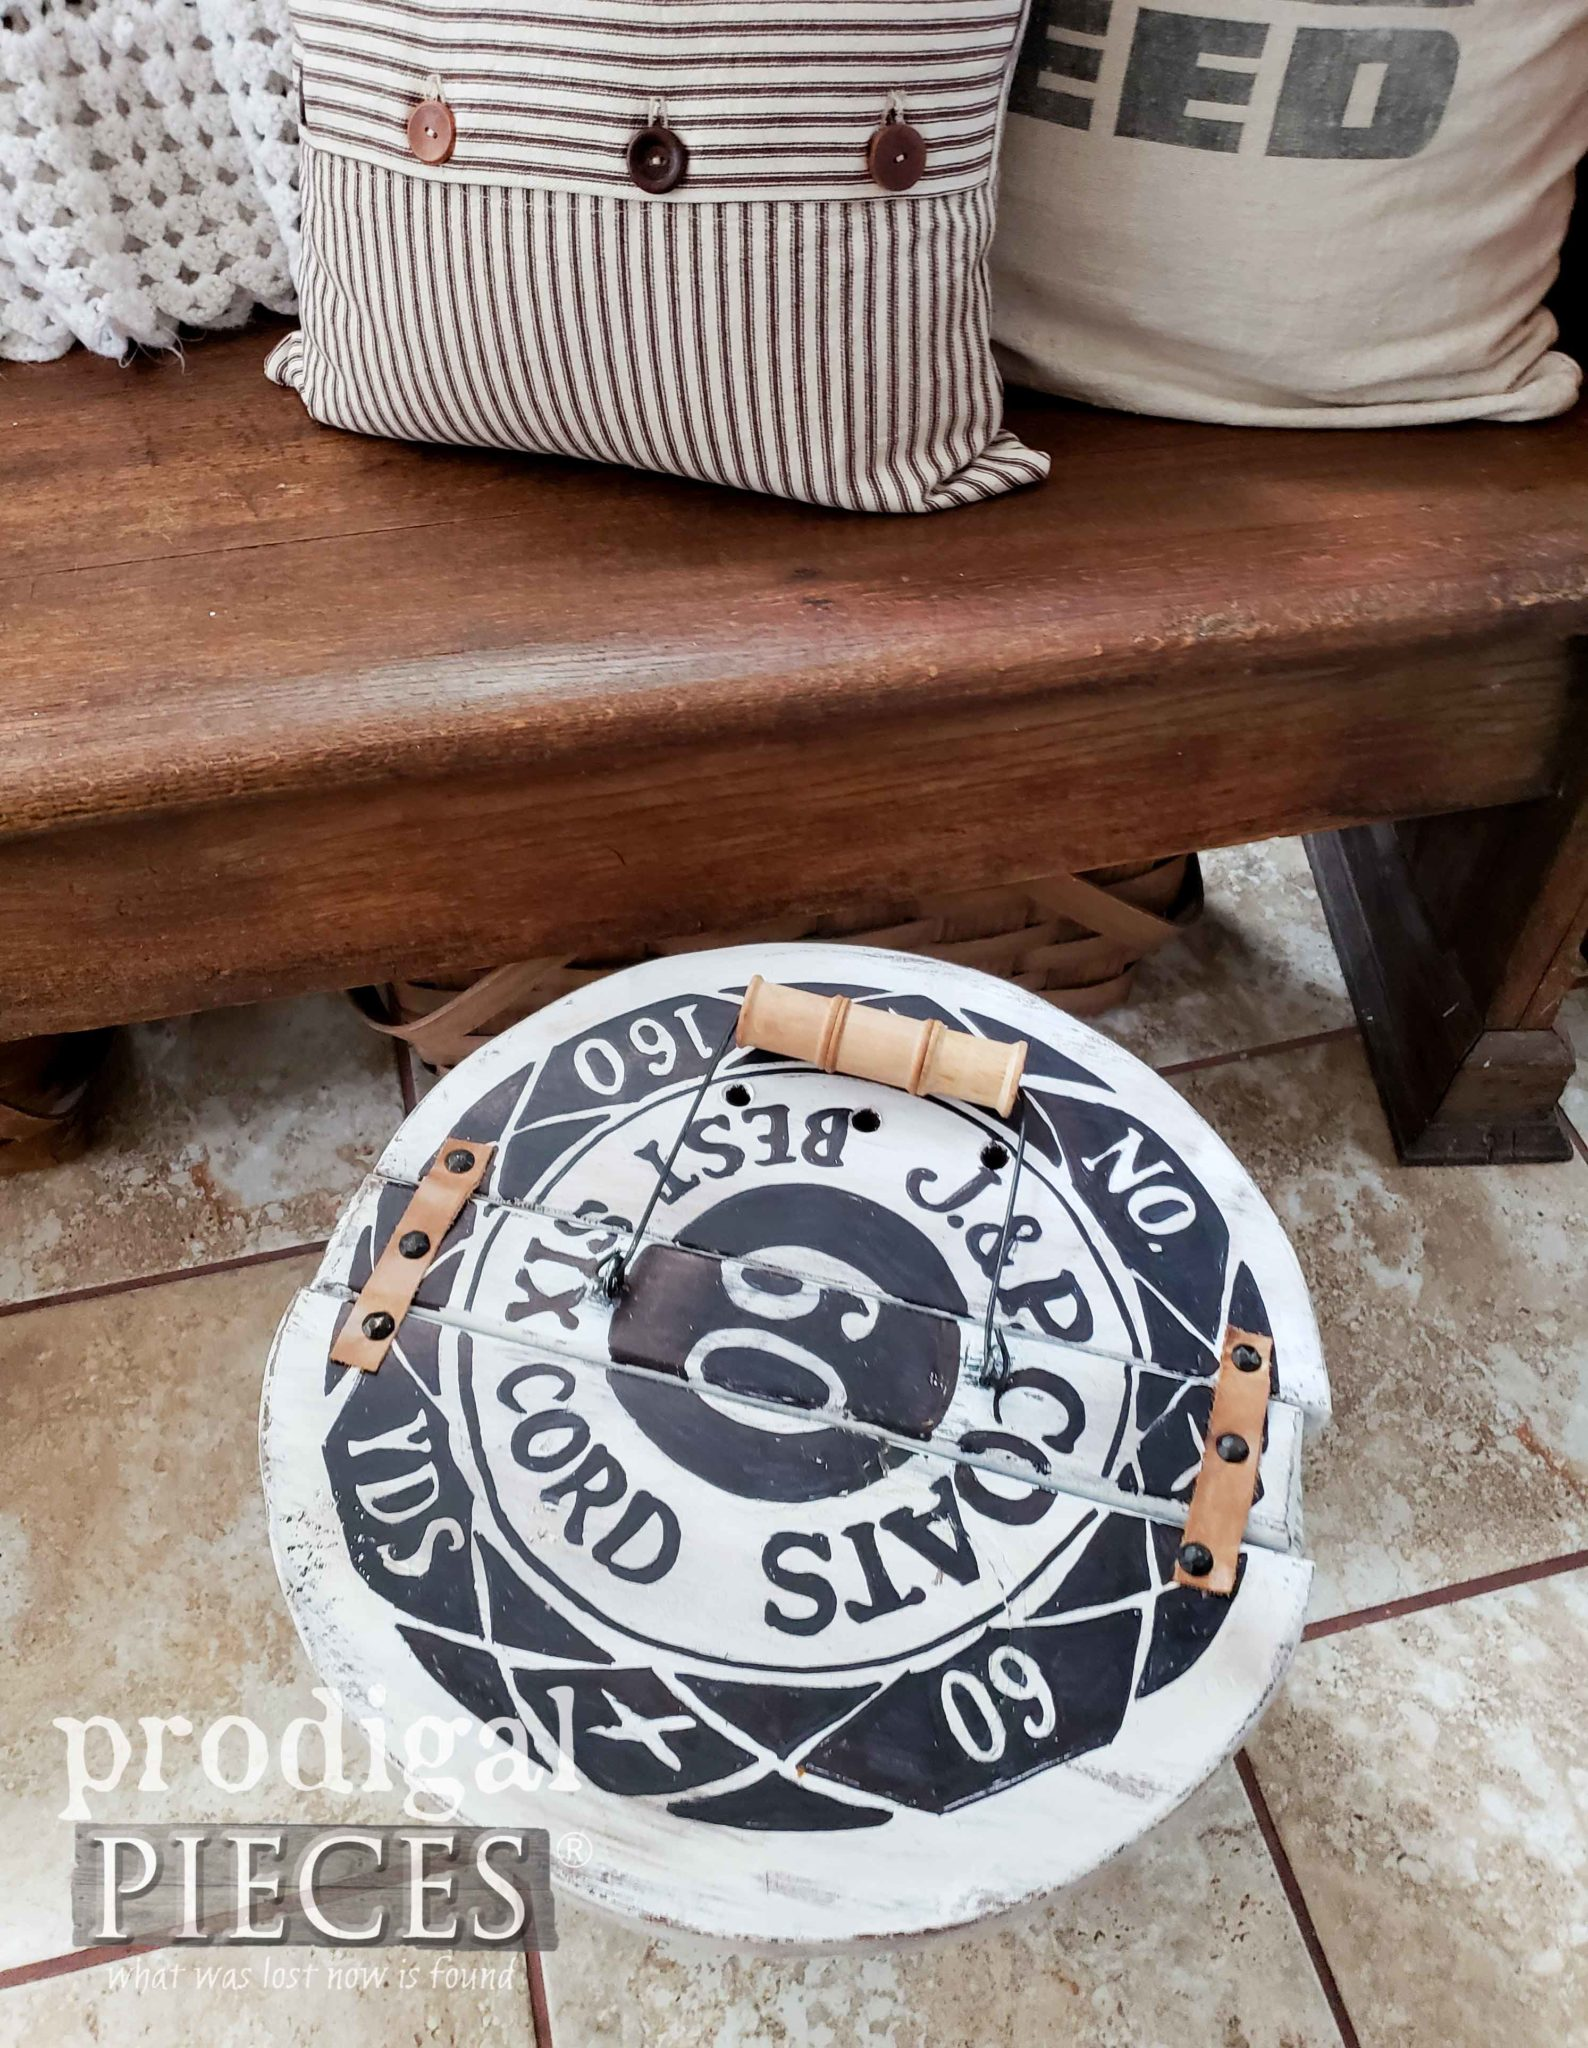 Rustic Style Farmhouse Sewing Basket with Vintage Typography by Larissa of Prodigal Pieces | prodigalpieces.com